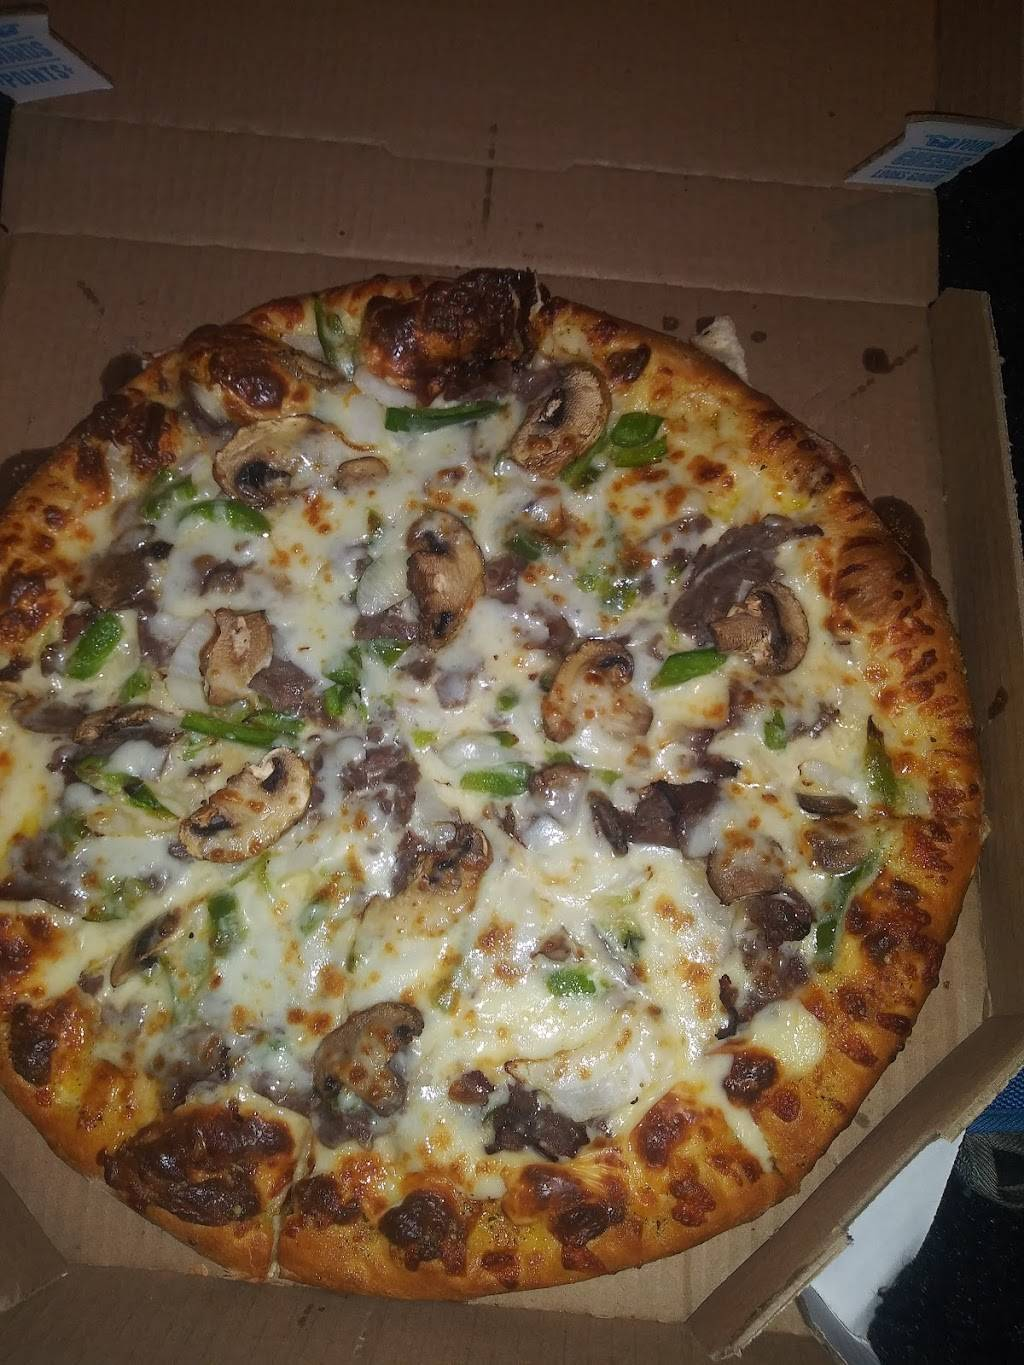 Dominos Pizza | meal delivery | 716 S Broadway St, Pittsburg, KS 66762, USA | 6202315555 OR +1 620-231-5555